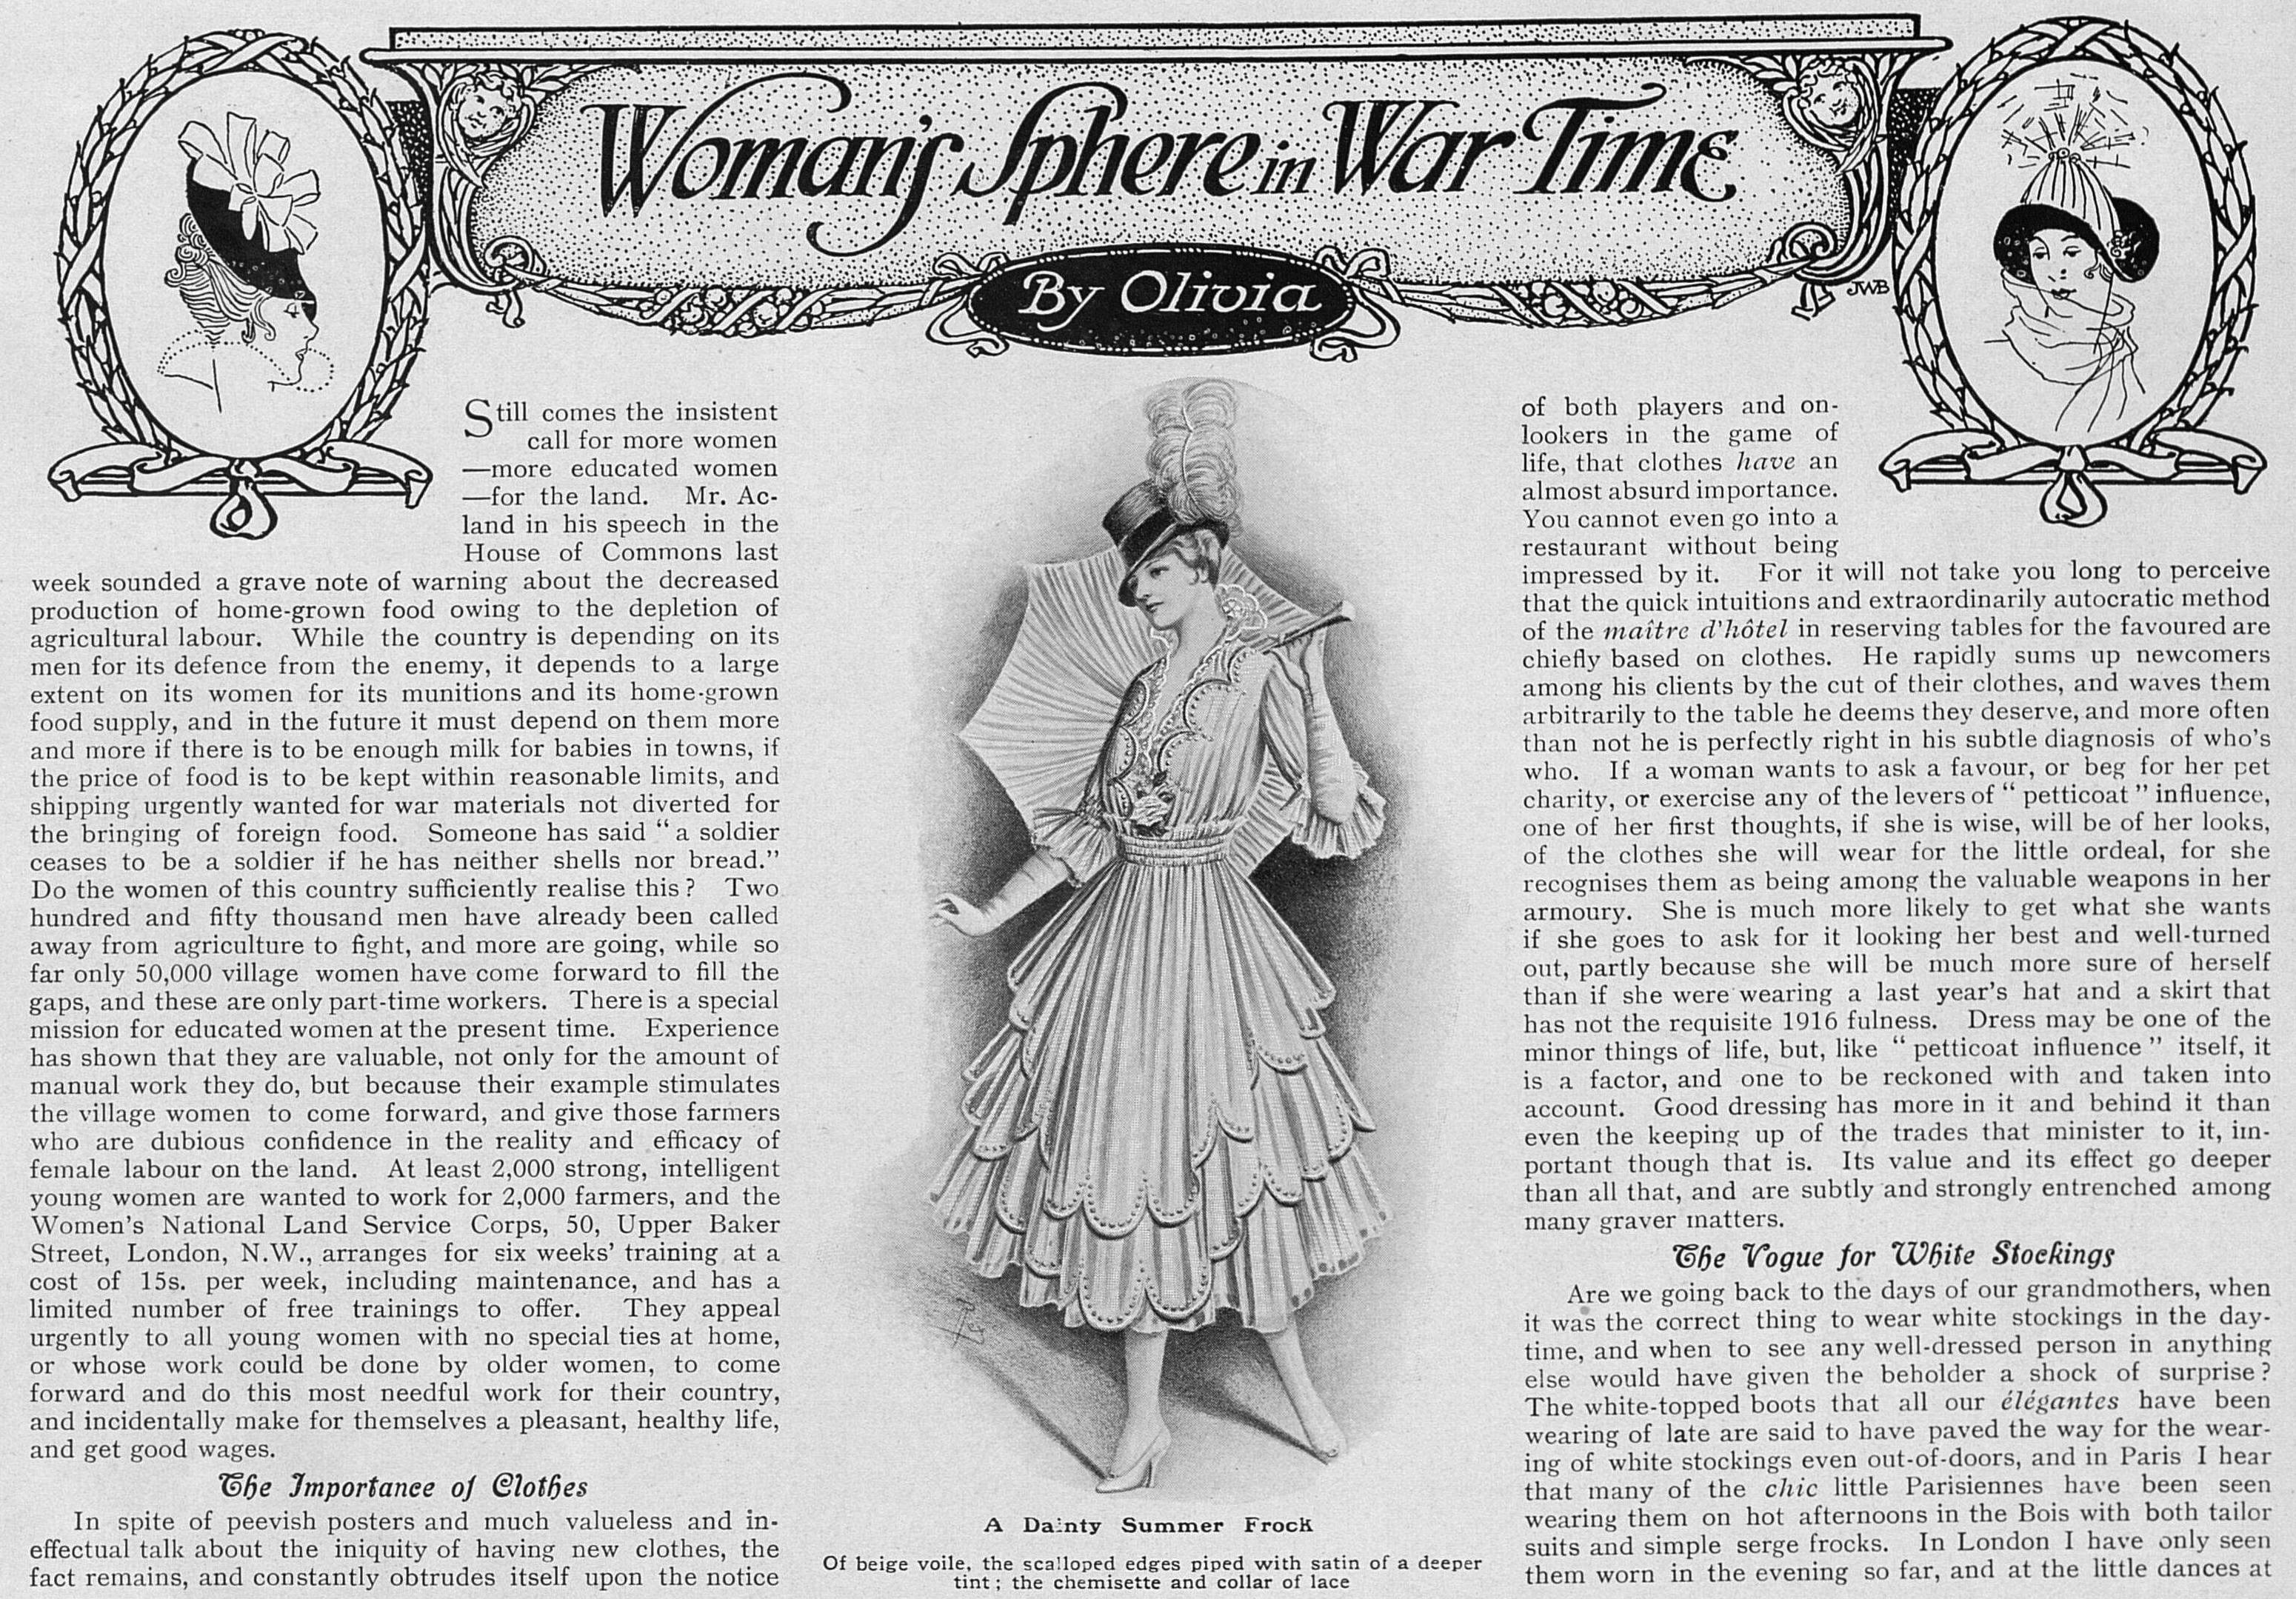 WomansSphereInWarTime_17Jun1916